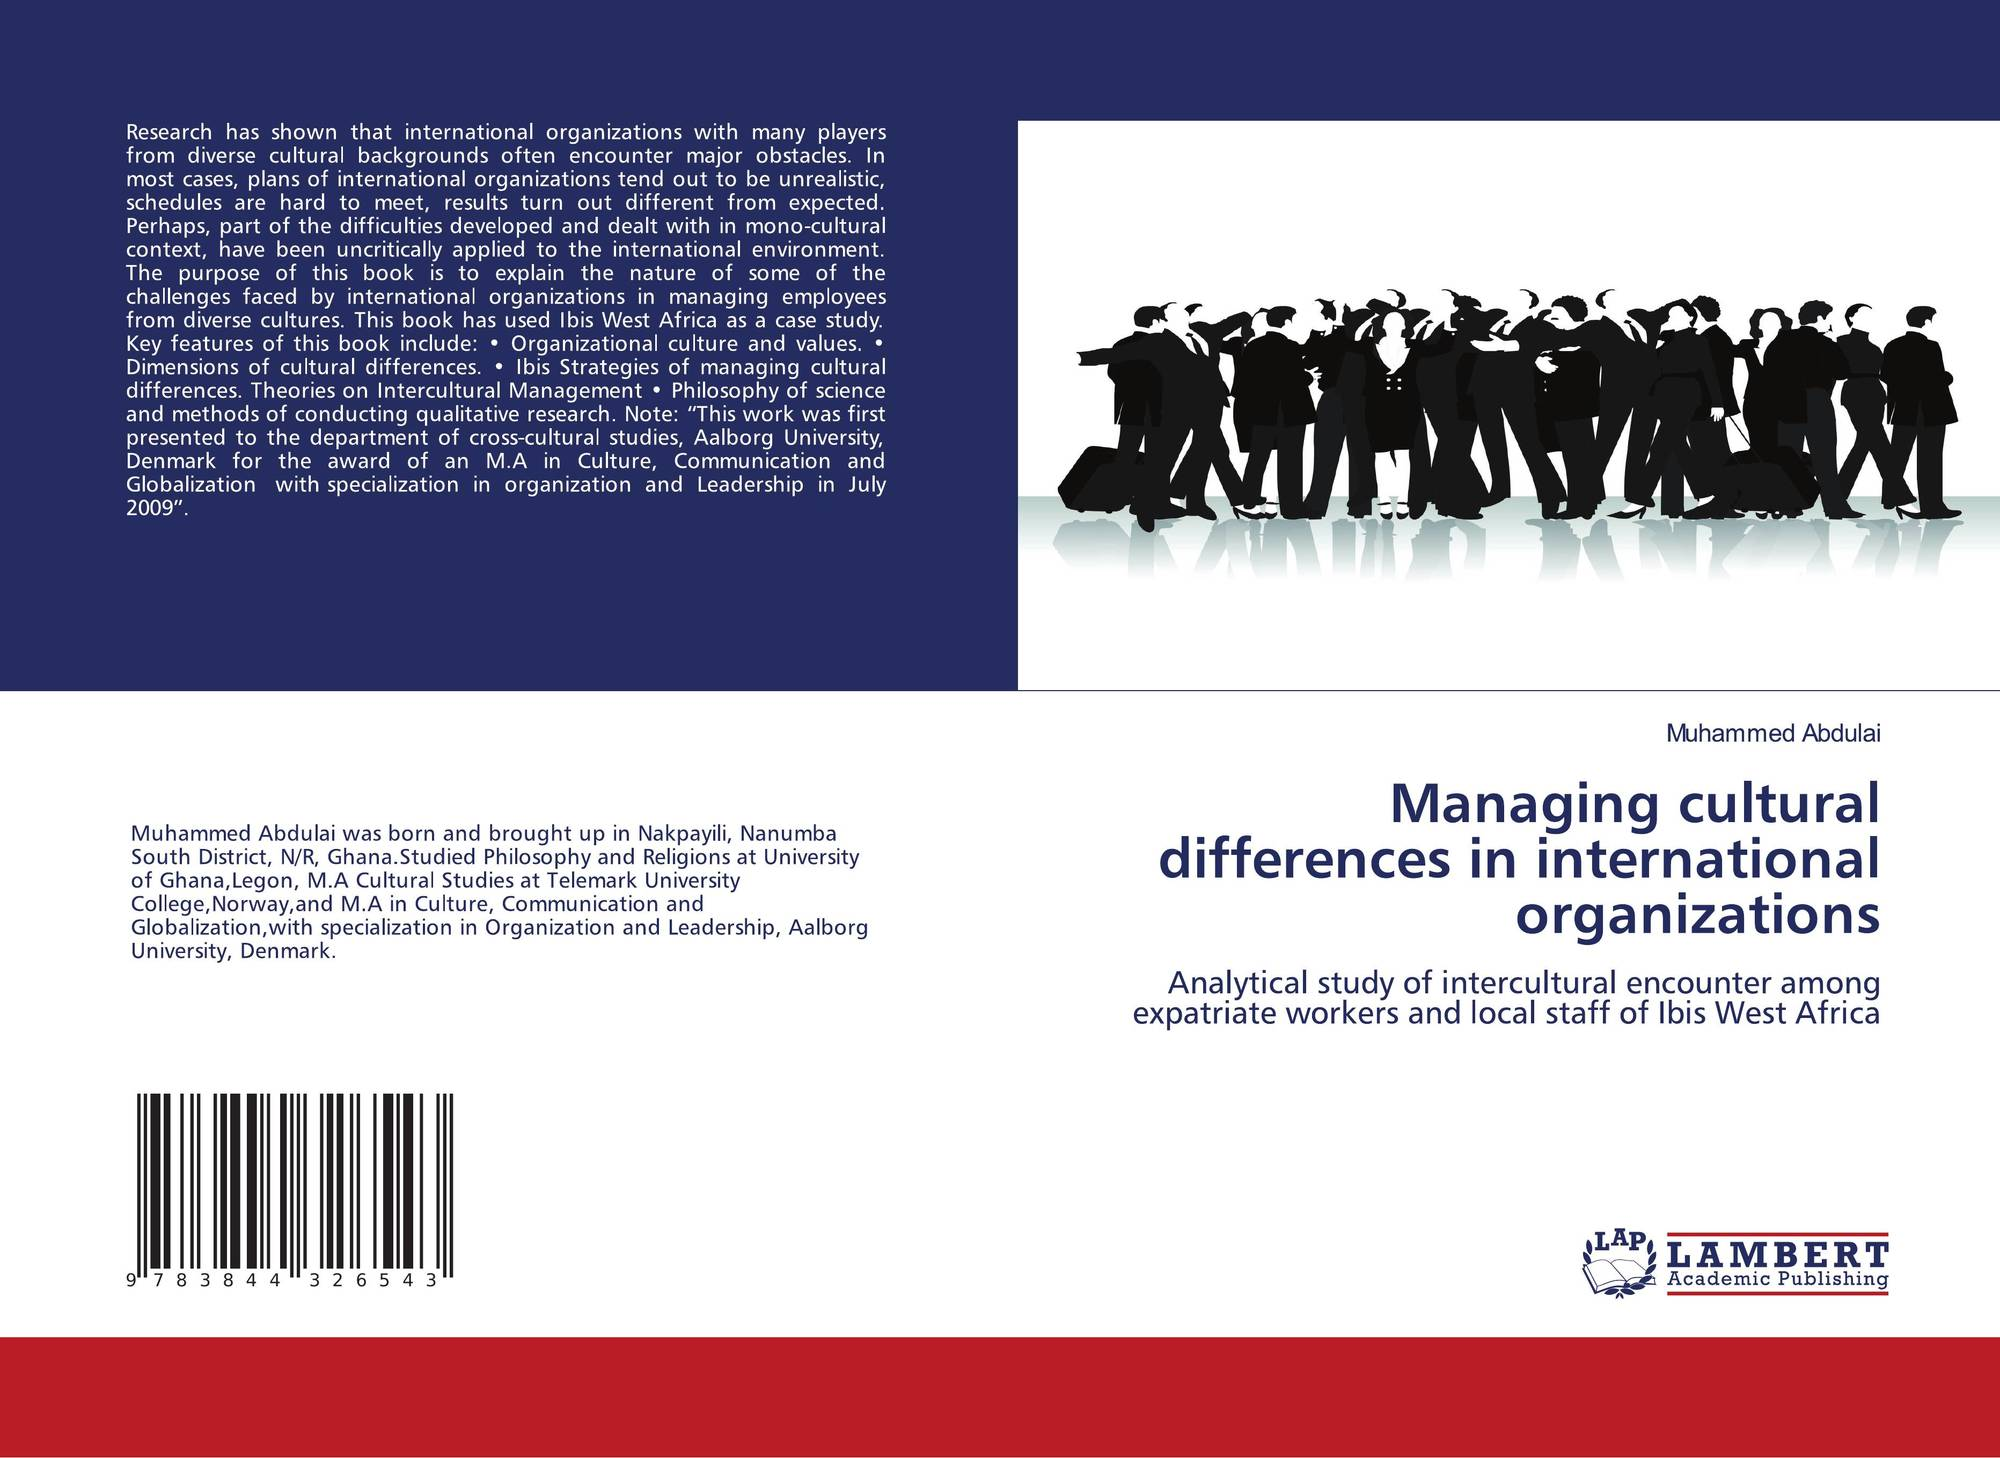 a report on major interpretations of culture in the international business context Culture and globalization it is also increasing international trade in cultural products and services, such as movies, music, and publications.